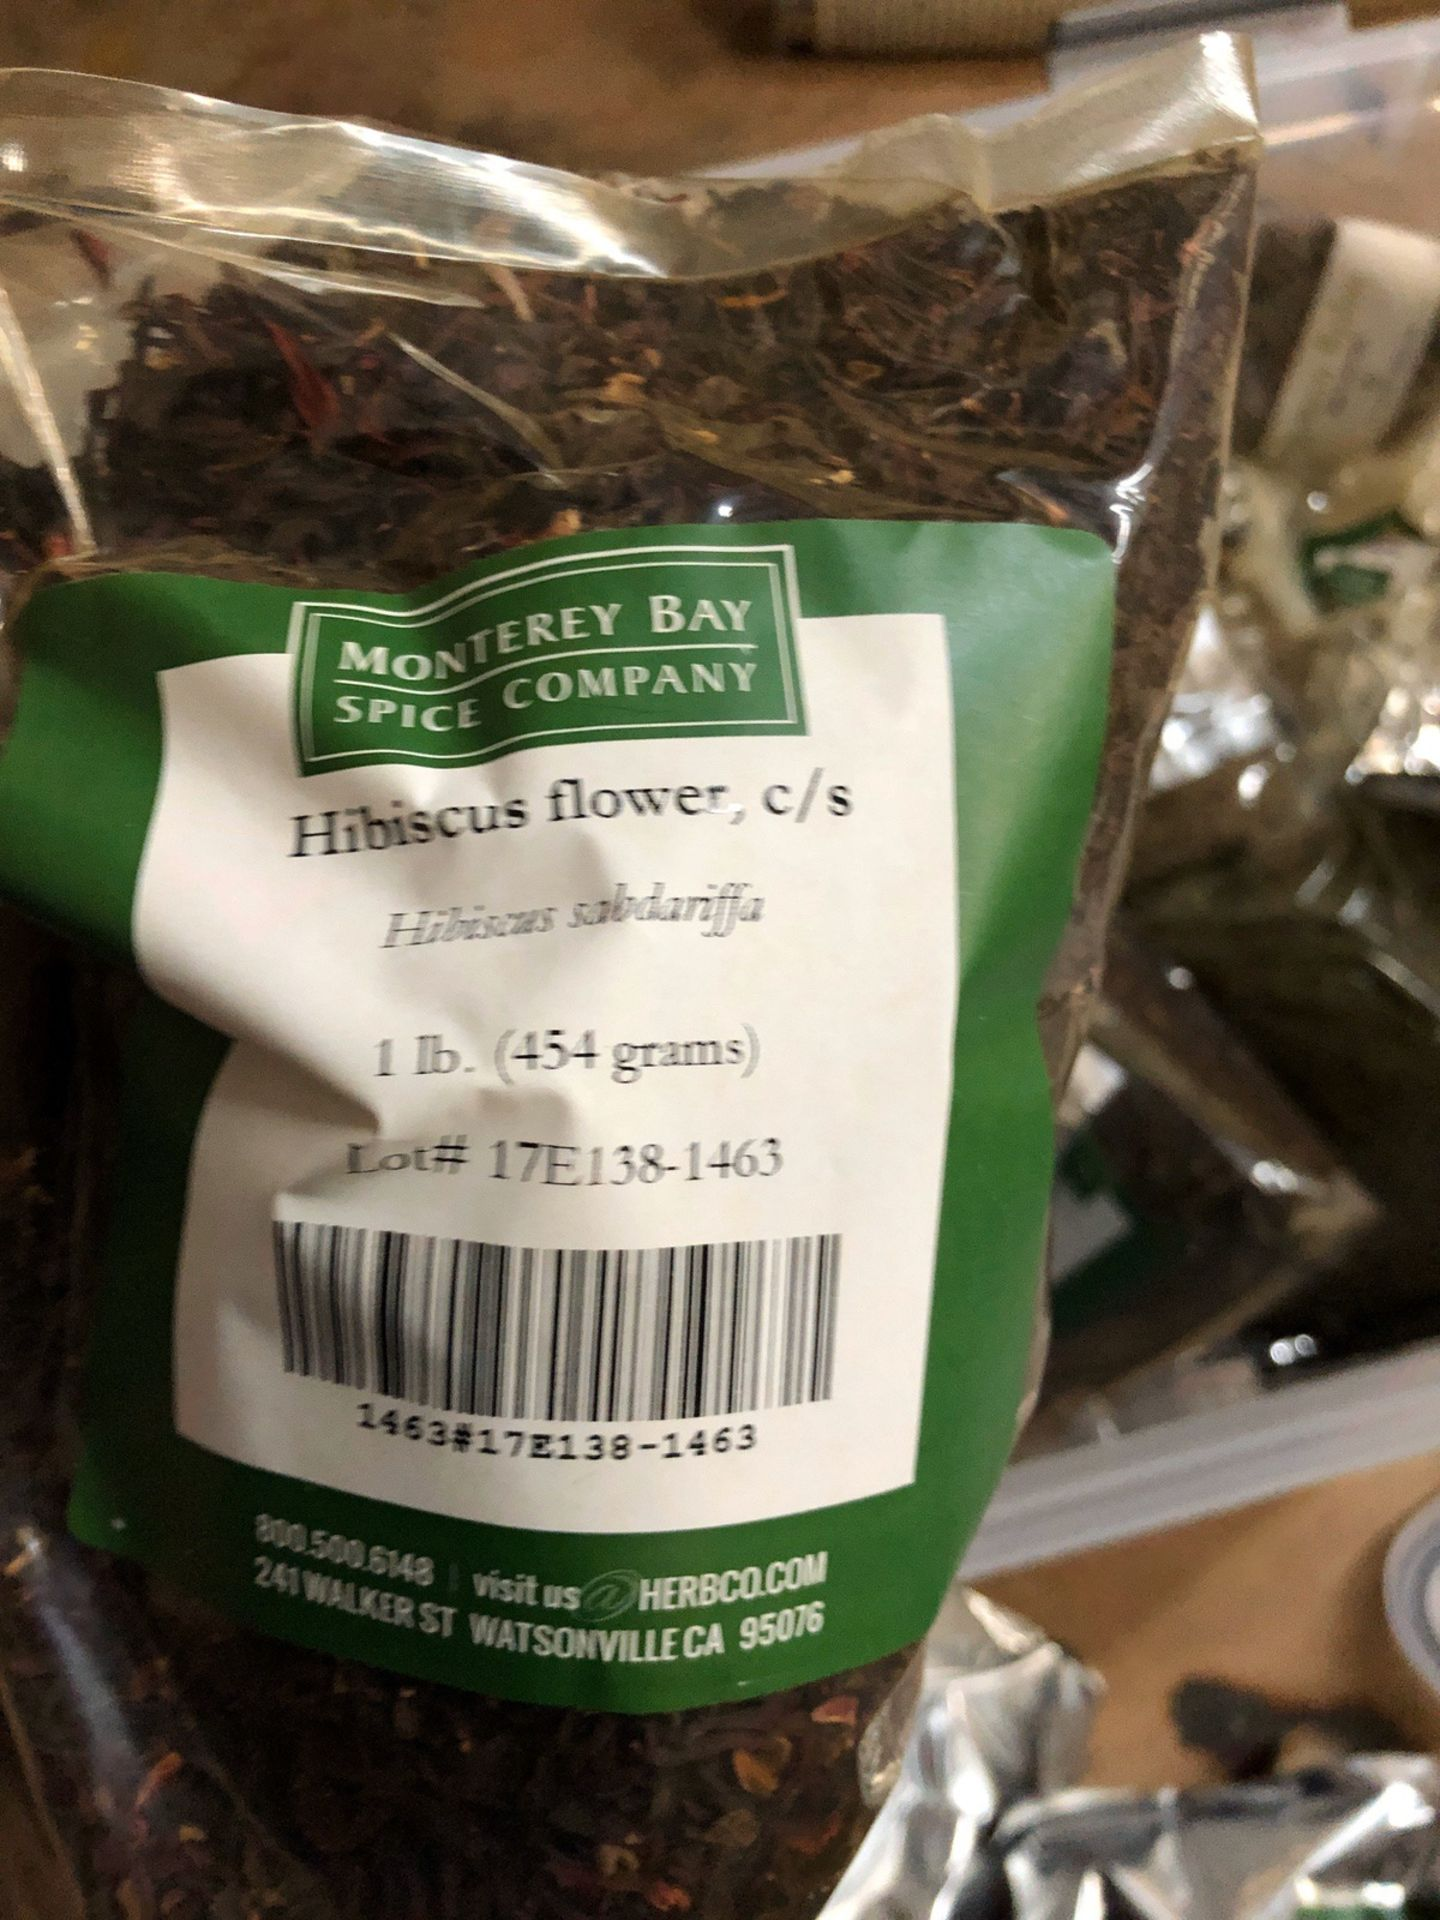 Lot 104 - Lot of Herbs and Botanicals: Hibiscus Flower, Jasmine Tea, Anise Seed, Licorice | Rig Fee: $20 or HC